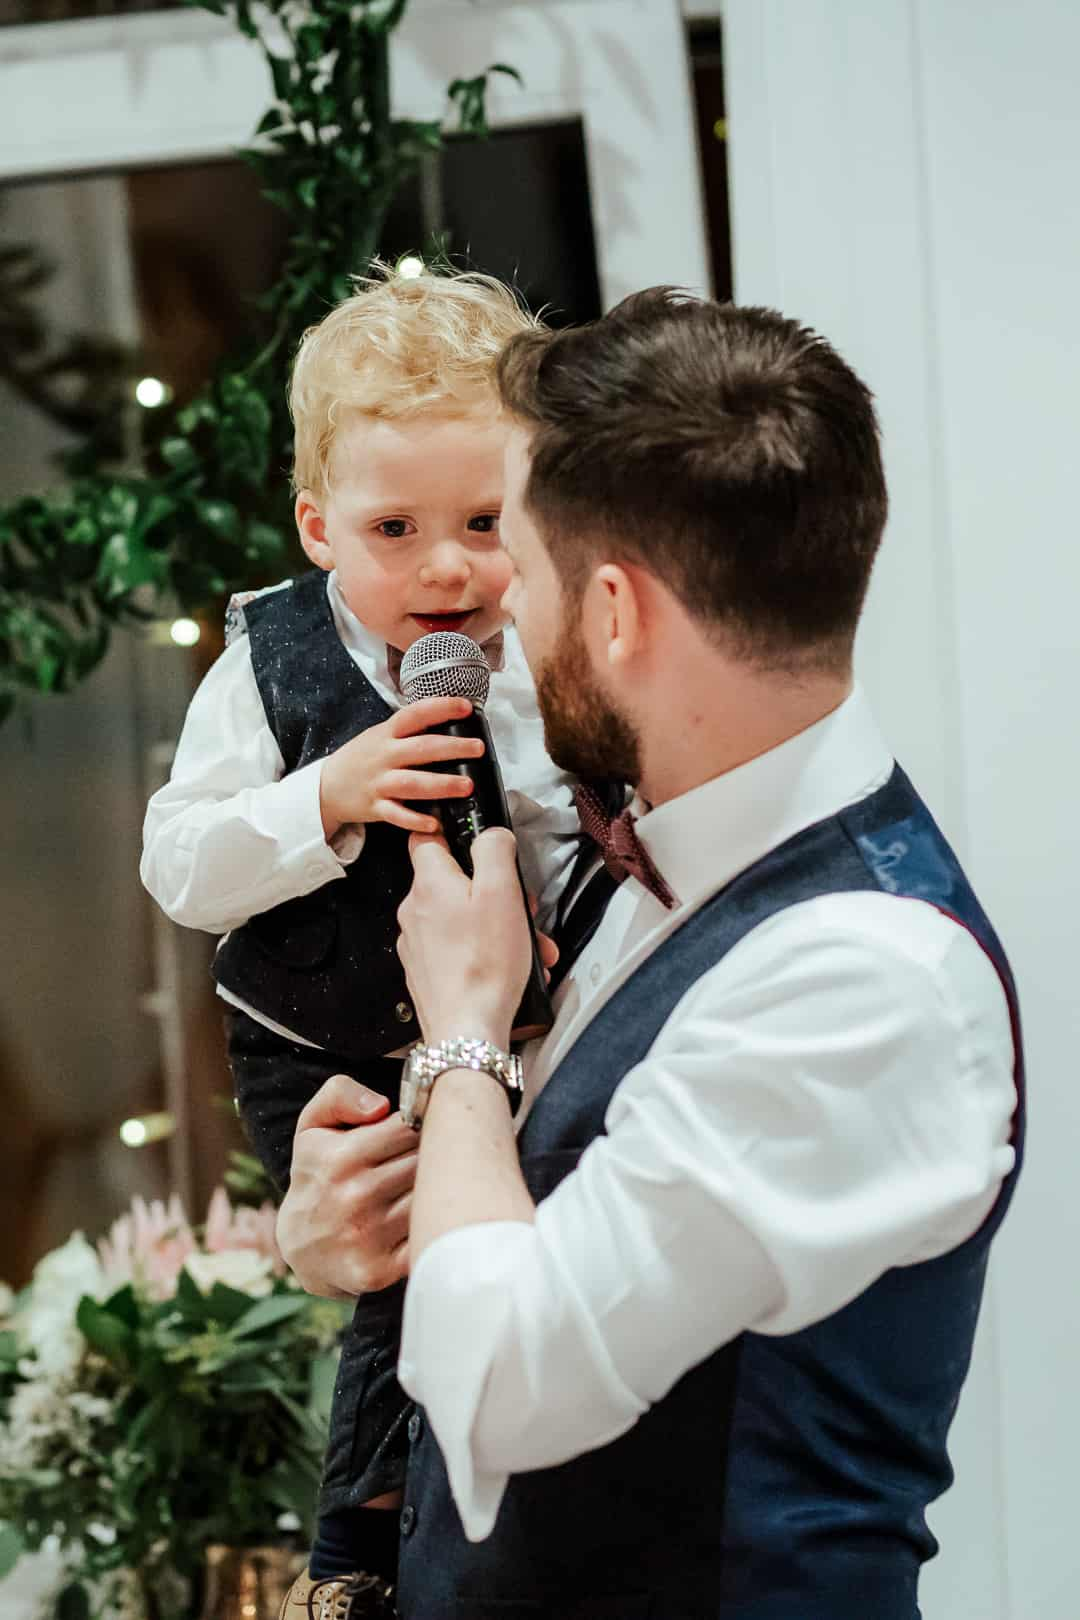 bride and groom's little kid giving a speech